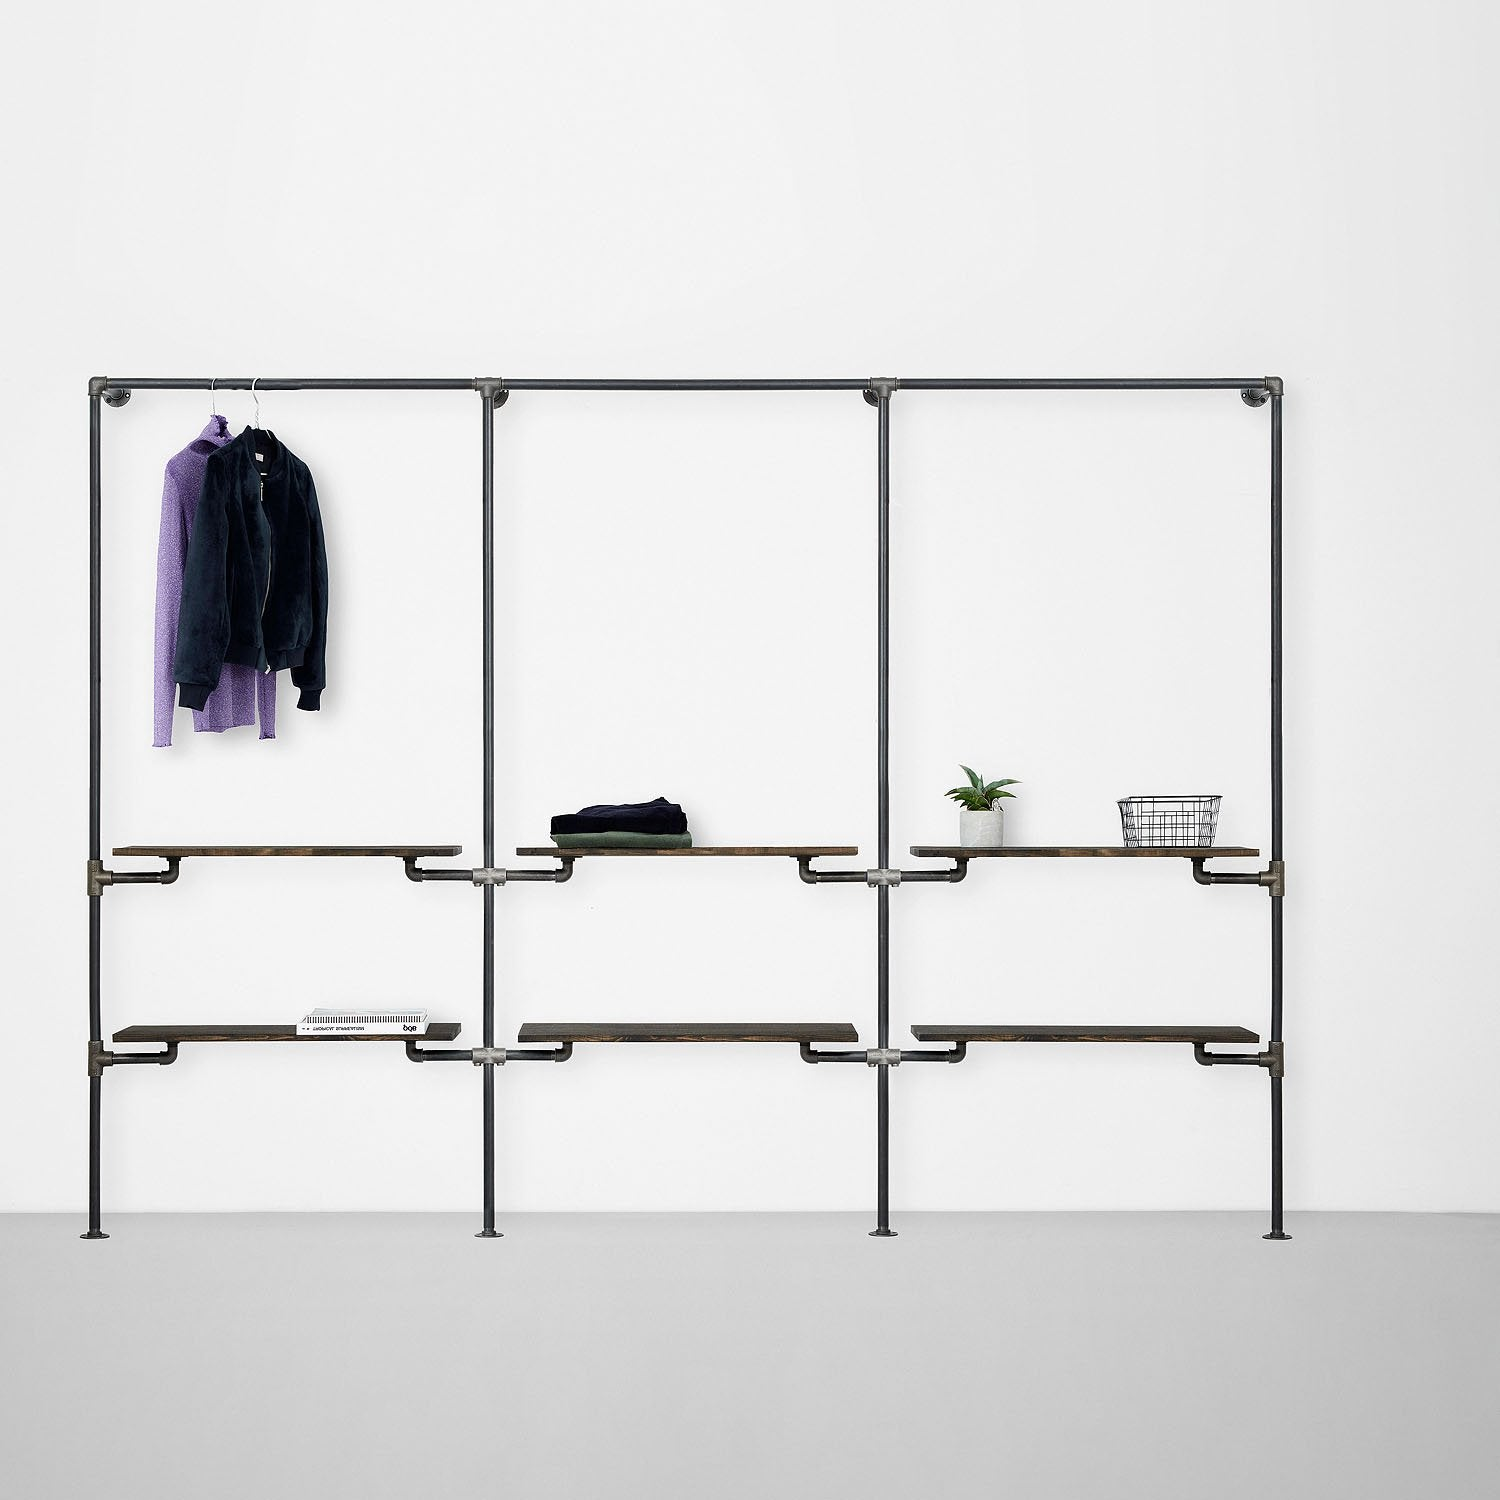 The Walk-In 3 row wardrobe system - 1 rail, 2 shelves /1 rail, 2 shelves/1 rail, 2 shelves